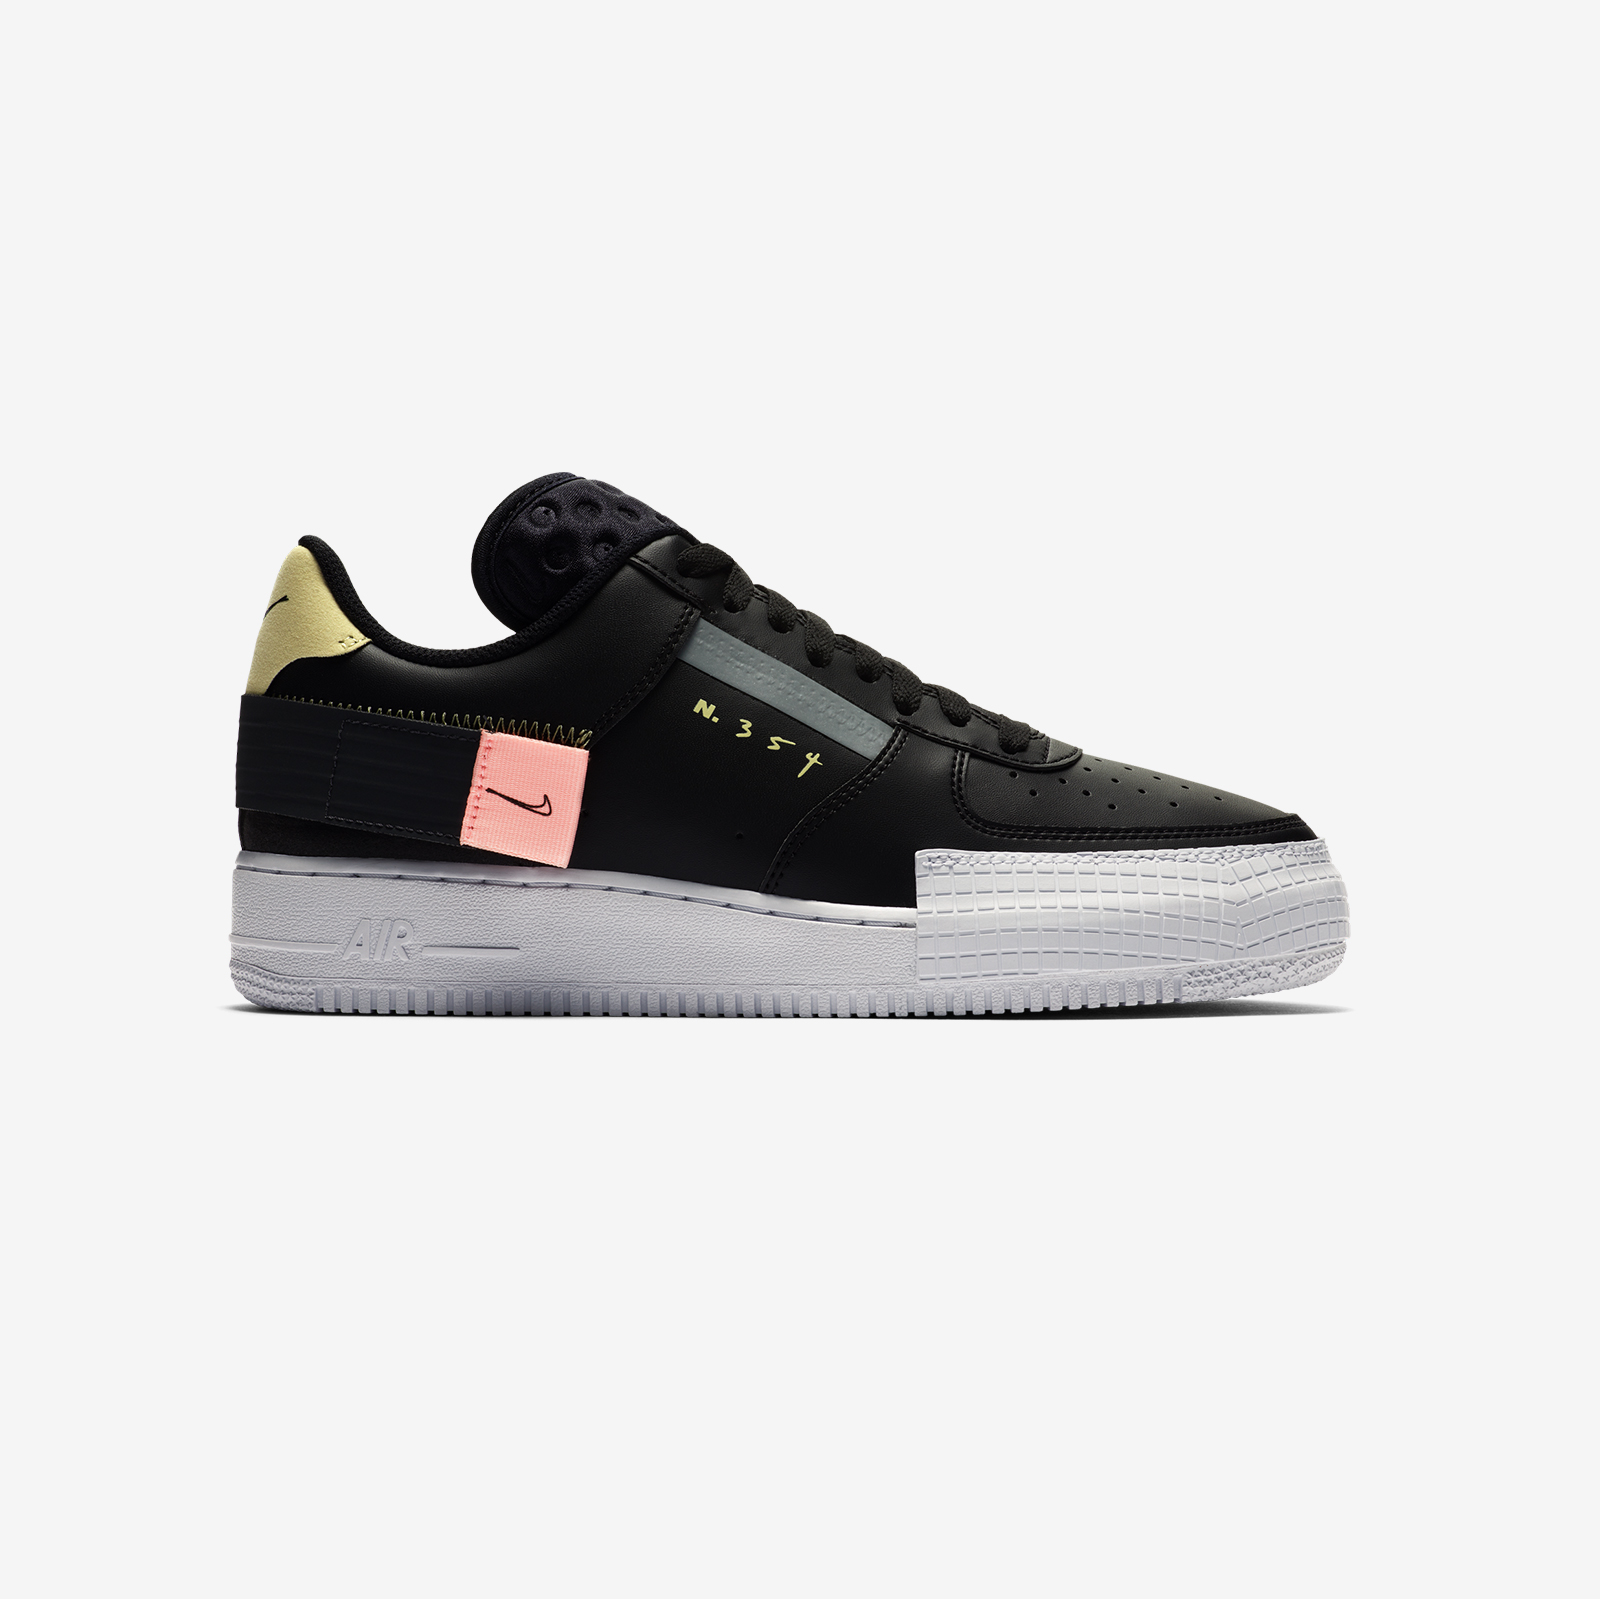 CI0054 001 Nike Air Force 1 Type Black 2